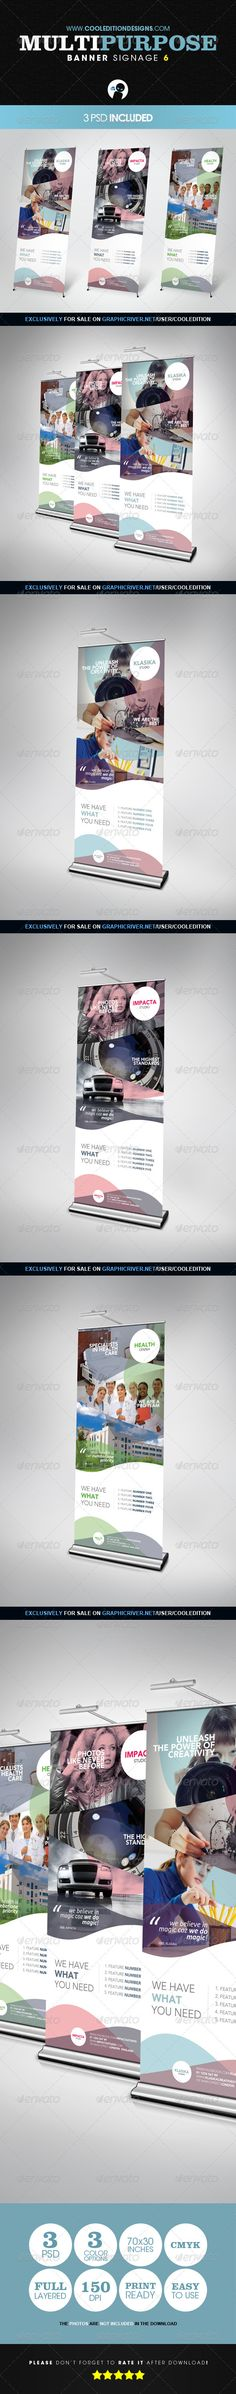 Buy Multipurpose Banner Signage 6 by cooledition on GraphicRiver. Multipurpose Banner Signage 6 Suitable for: Pull Up Banner Design, Roll Up Design, Pop Up Banner, Tradeshow Banner Design, Signage Design, Brochure Design, Letterhead Template, Banner Stands, Elegant Business Cards